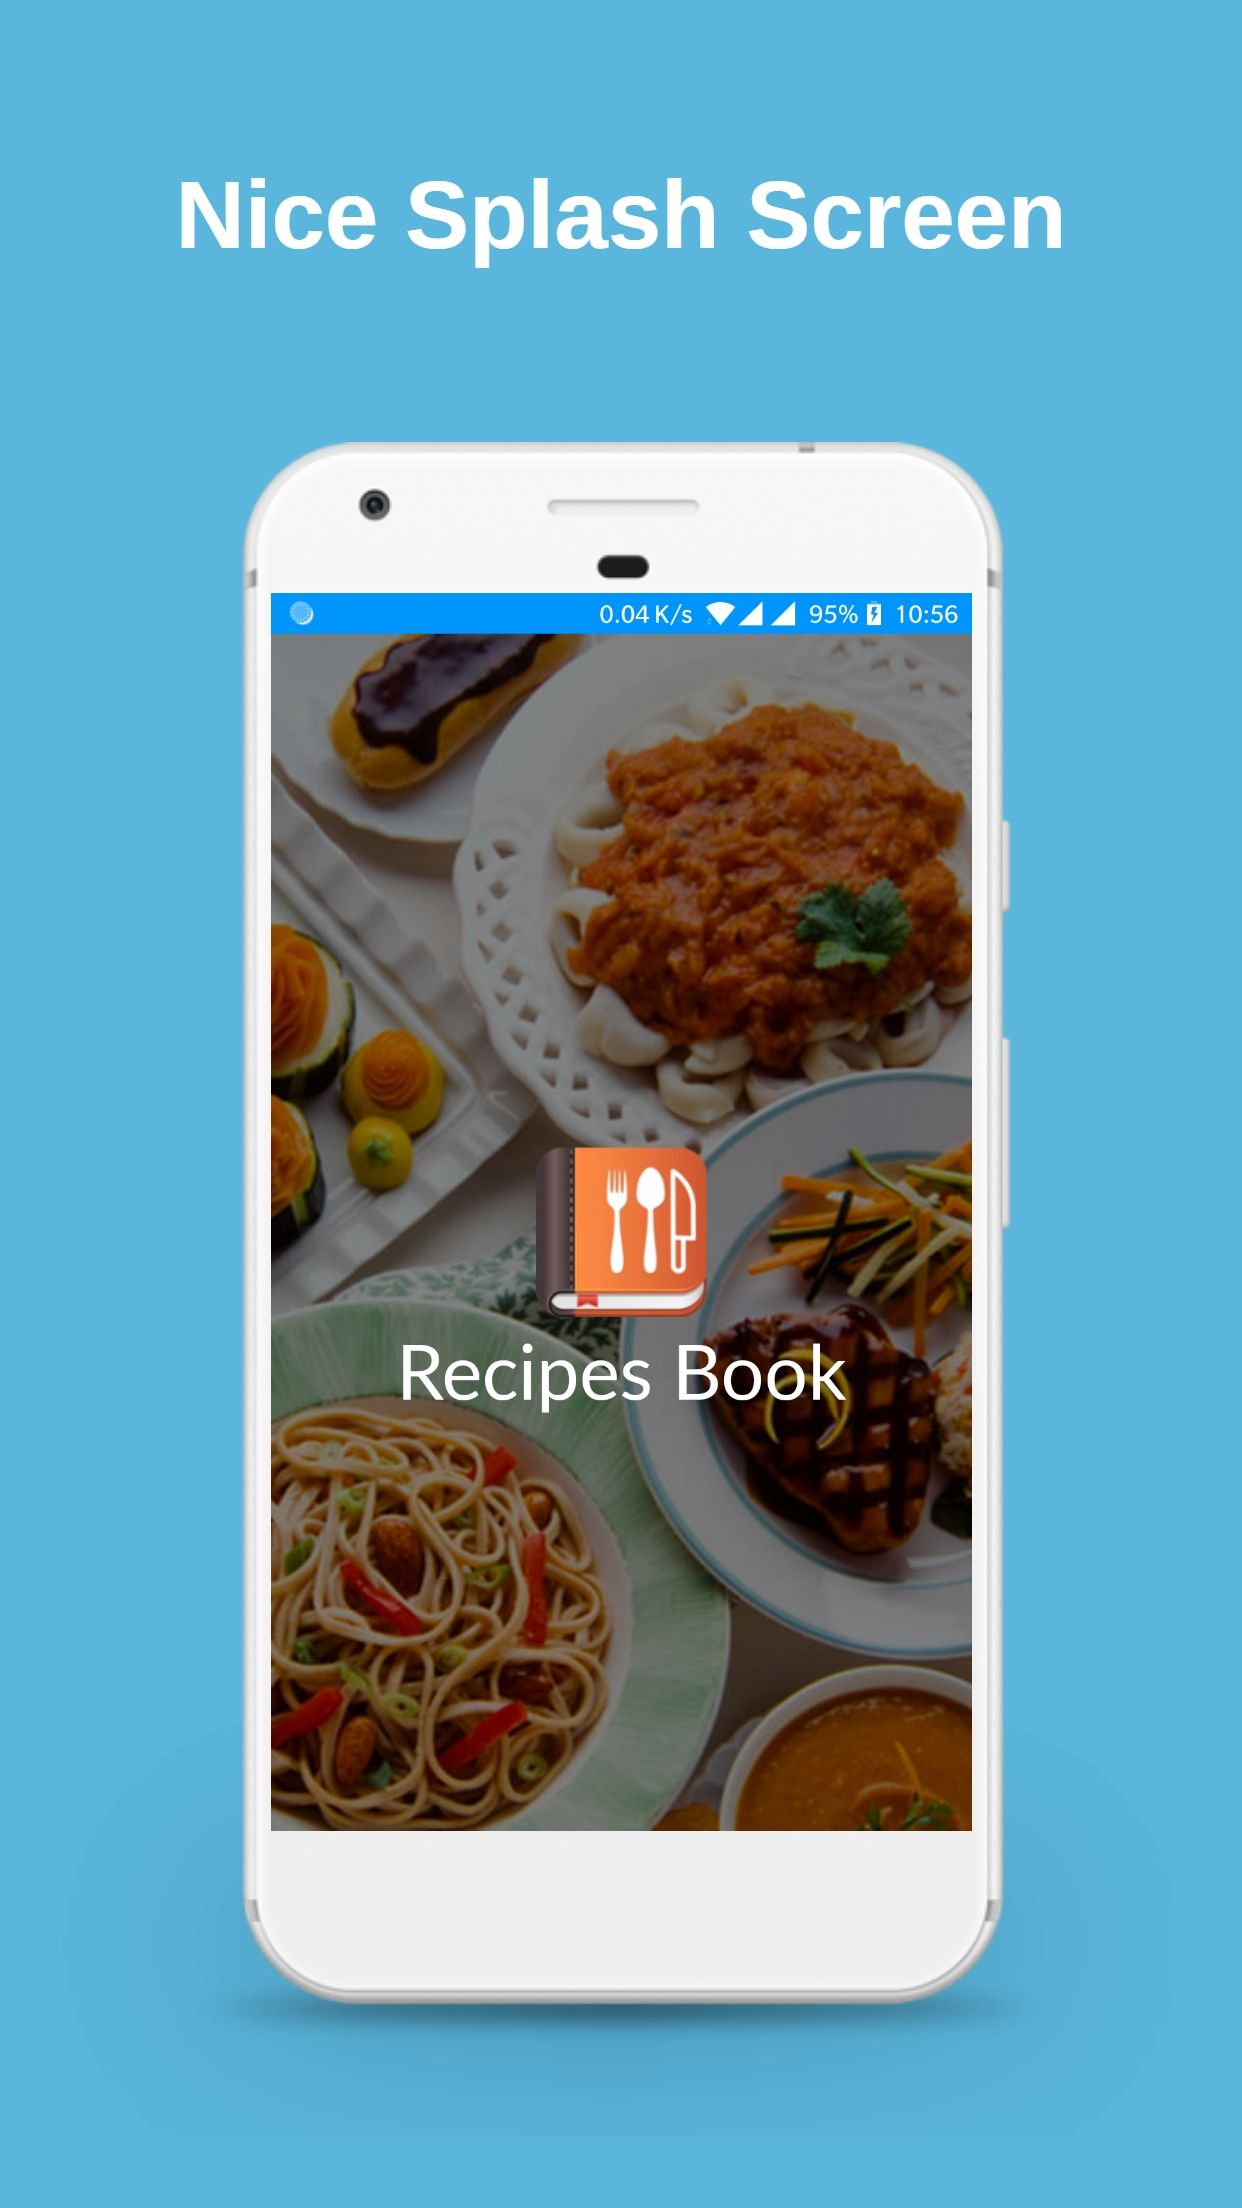 Recipes Book - Android Source Code Screenshot 1